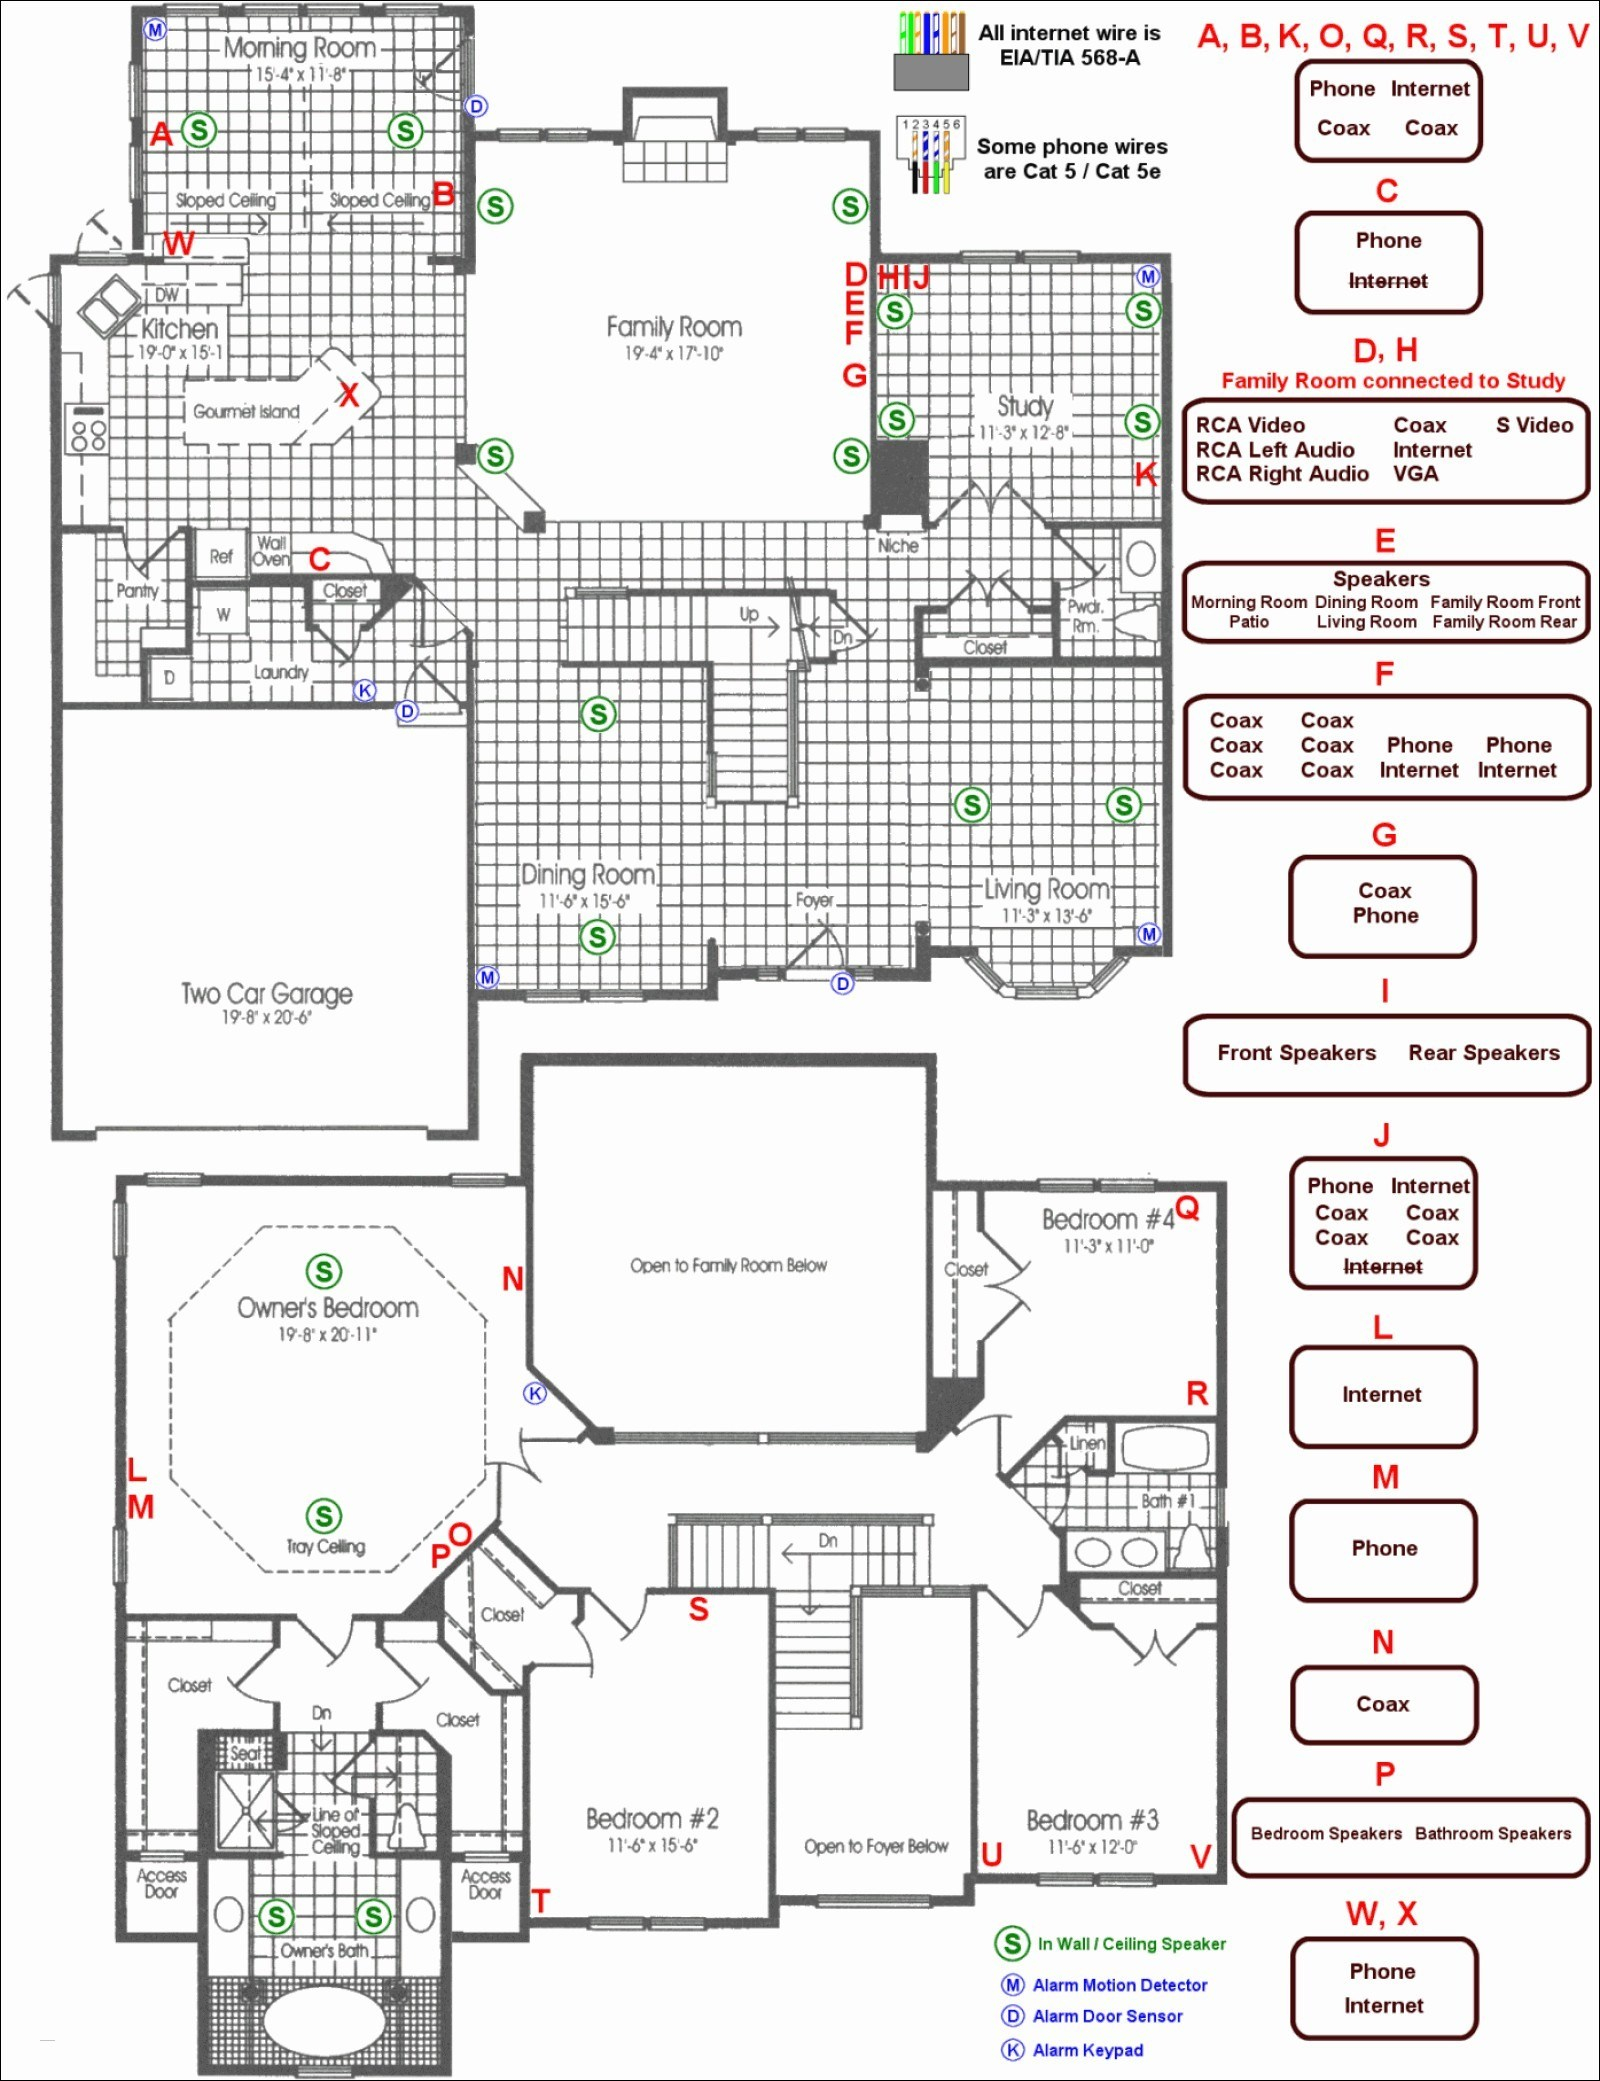 electrical house wiring diagram software Download-wire diagram new home wiring diagram gallery of wire diagram 1-g